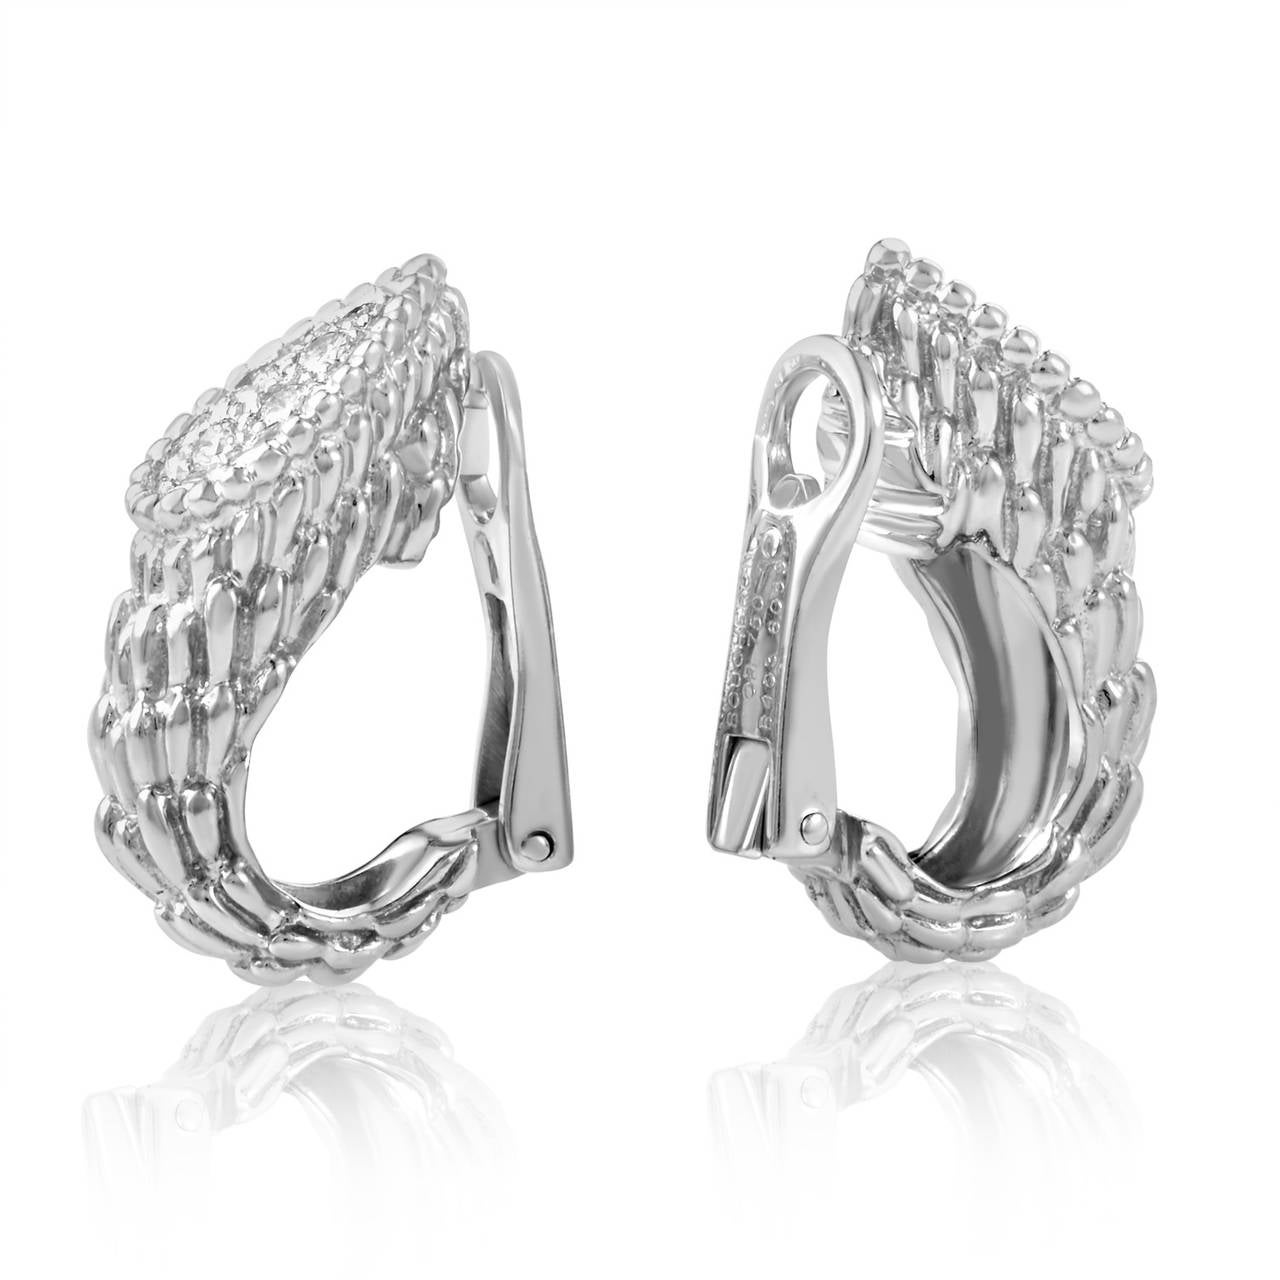 This Gorgeous Design From Boucheron Is Absolutely Stunning The Earrings Are Made Of Carved 18k